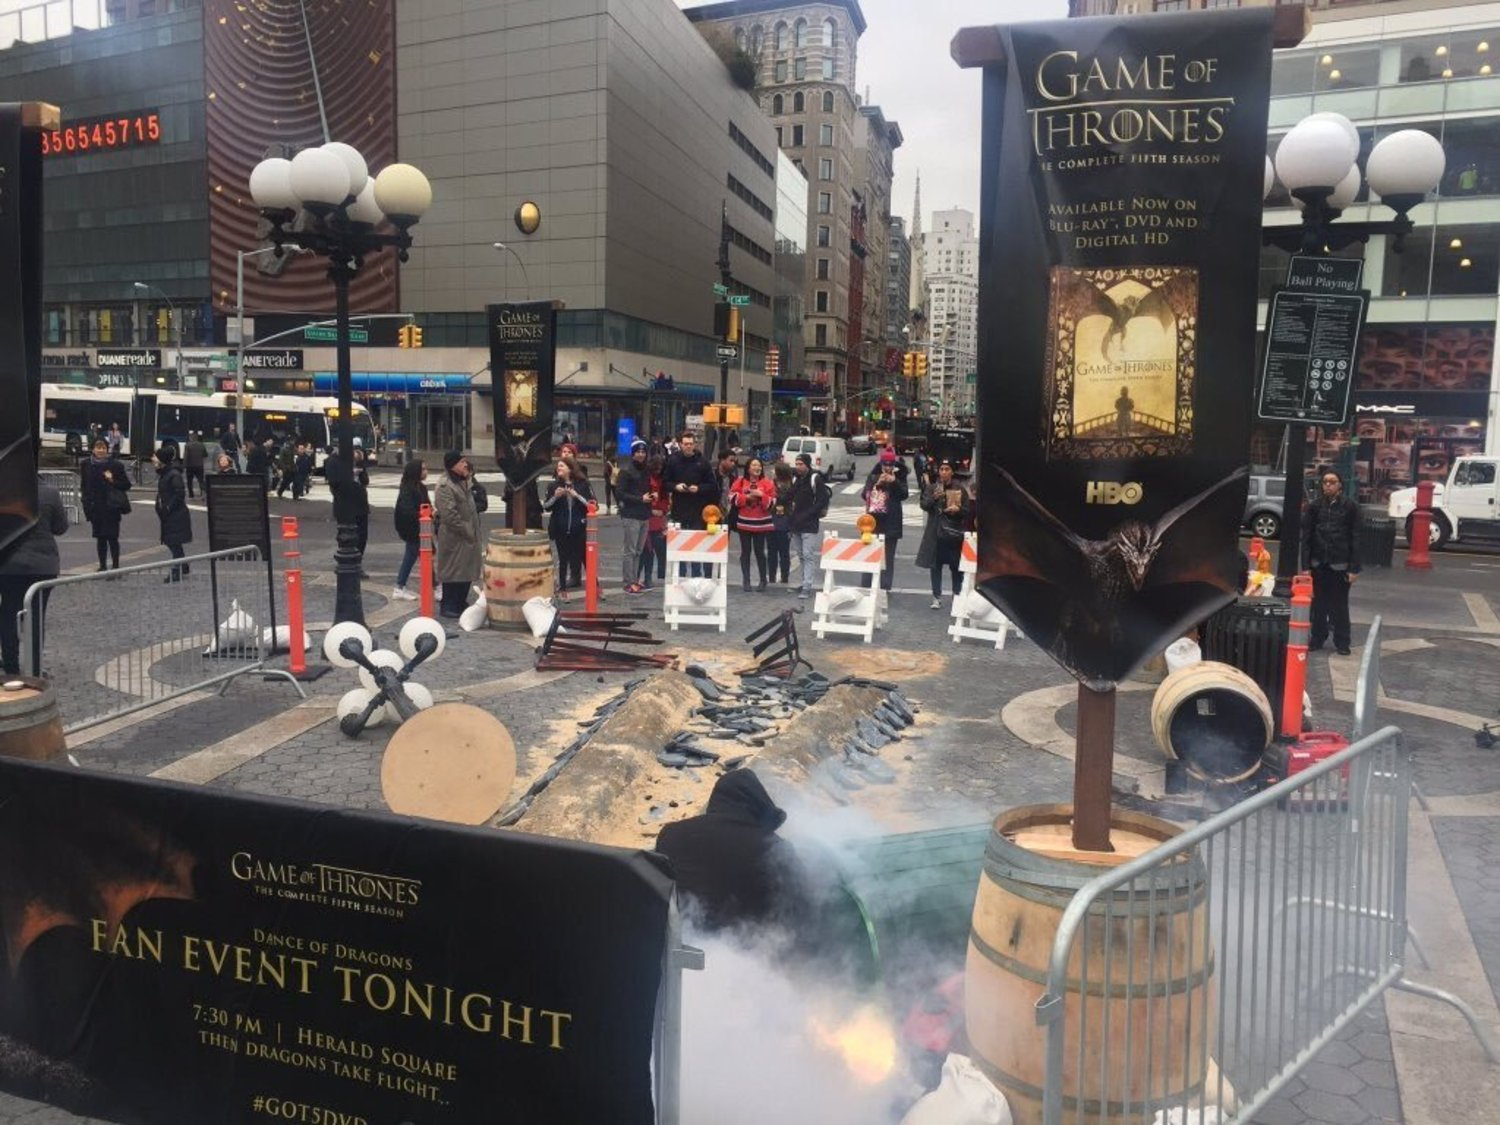 Rumors of Dragons being spotted in NYC today #GoT5DVD https://t.co/BoTe7aYnm7